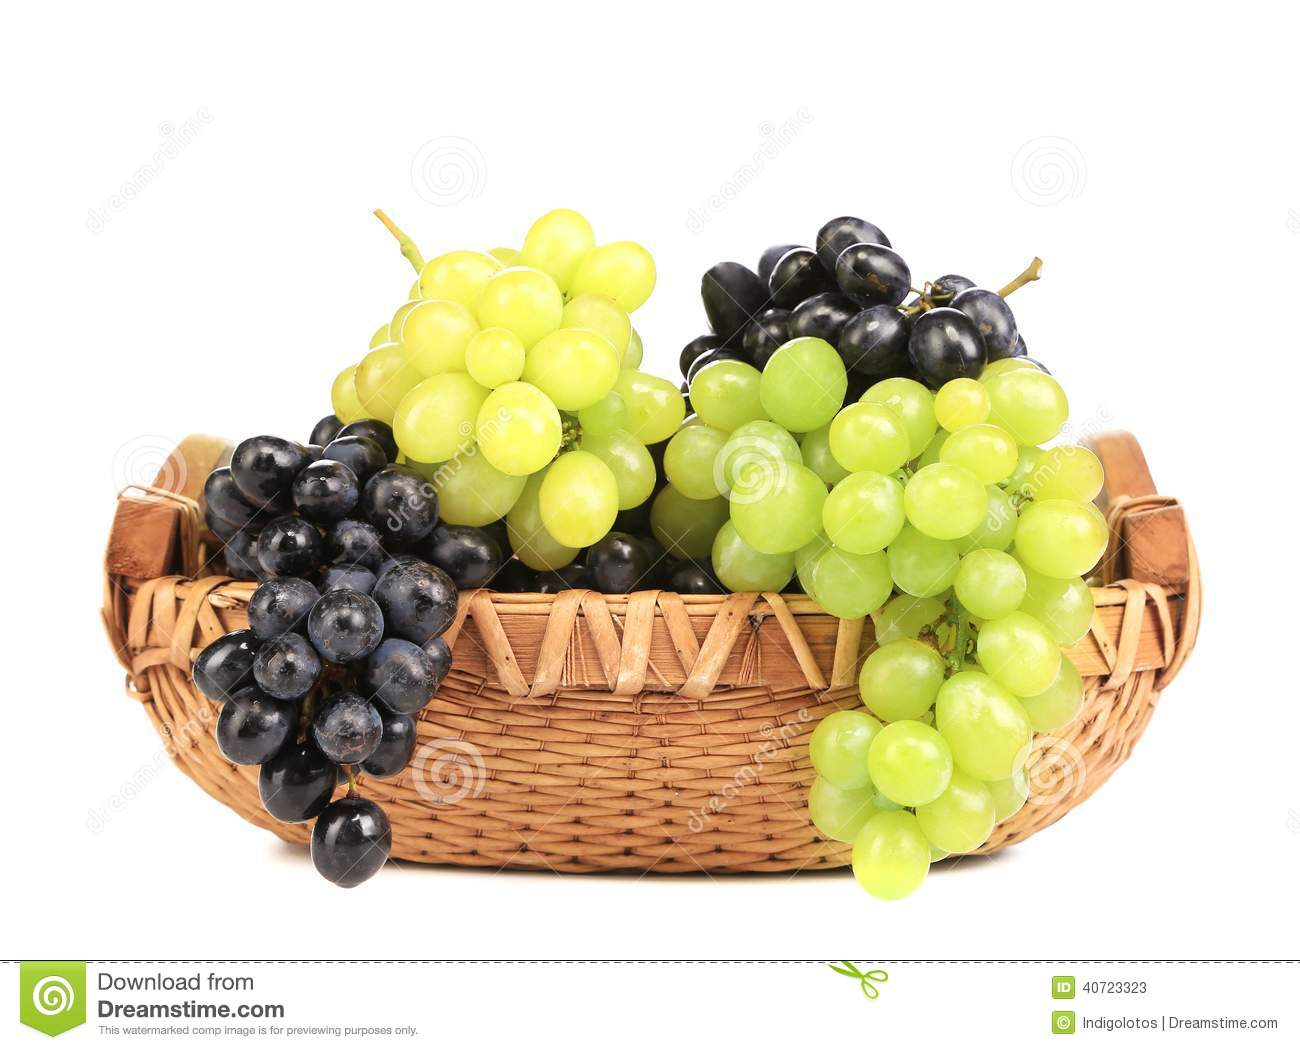 Bunch of white and black grapes in a basket.